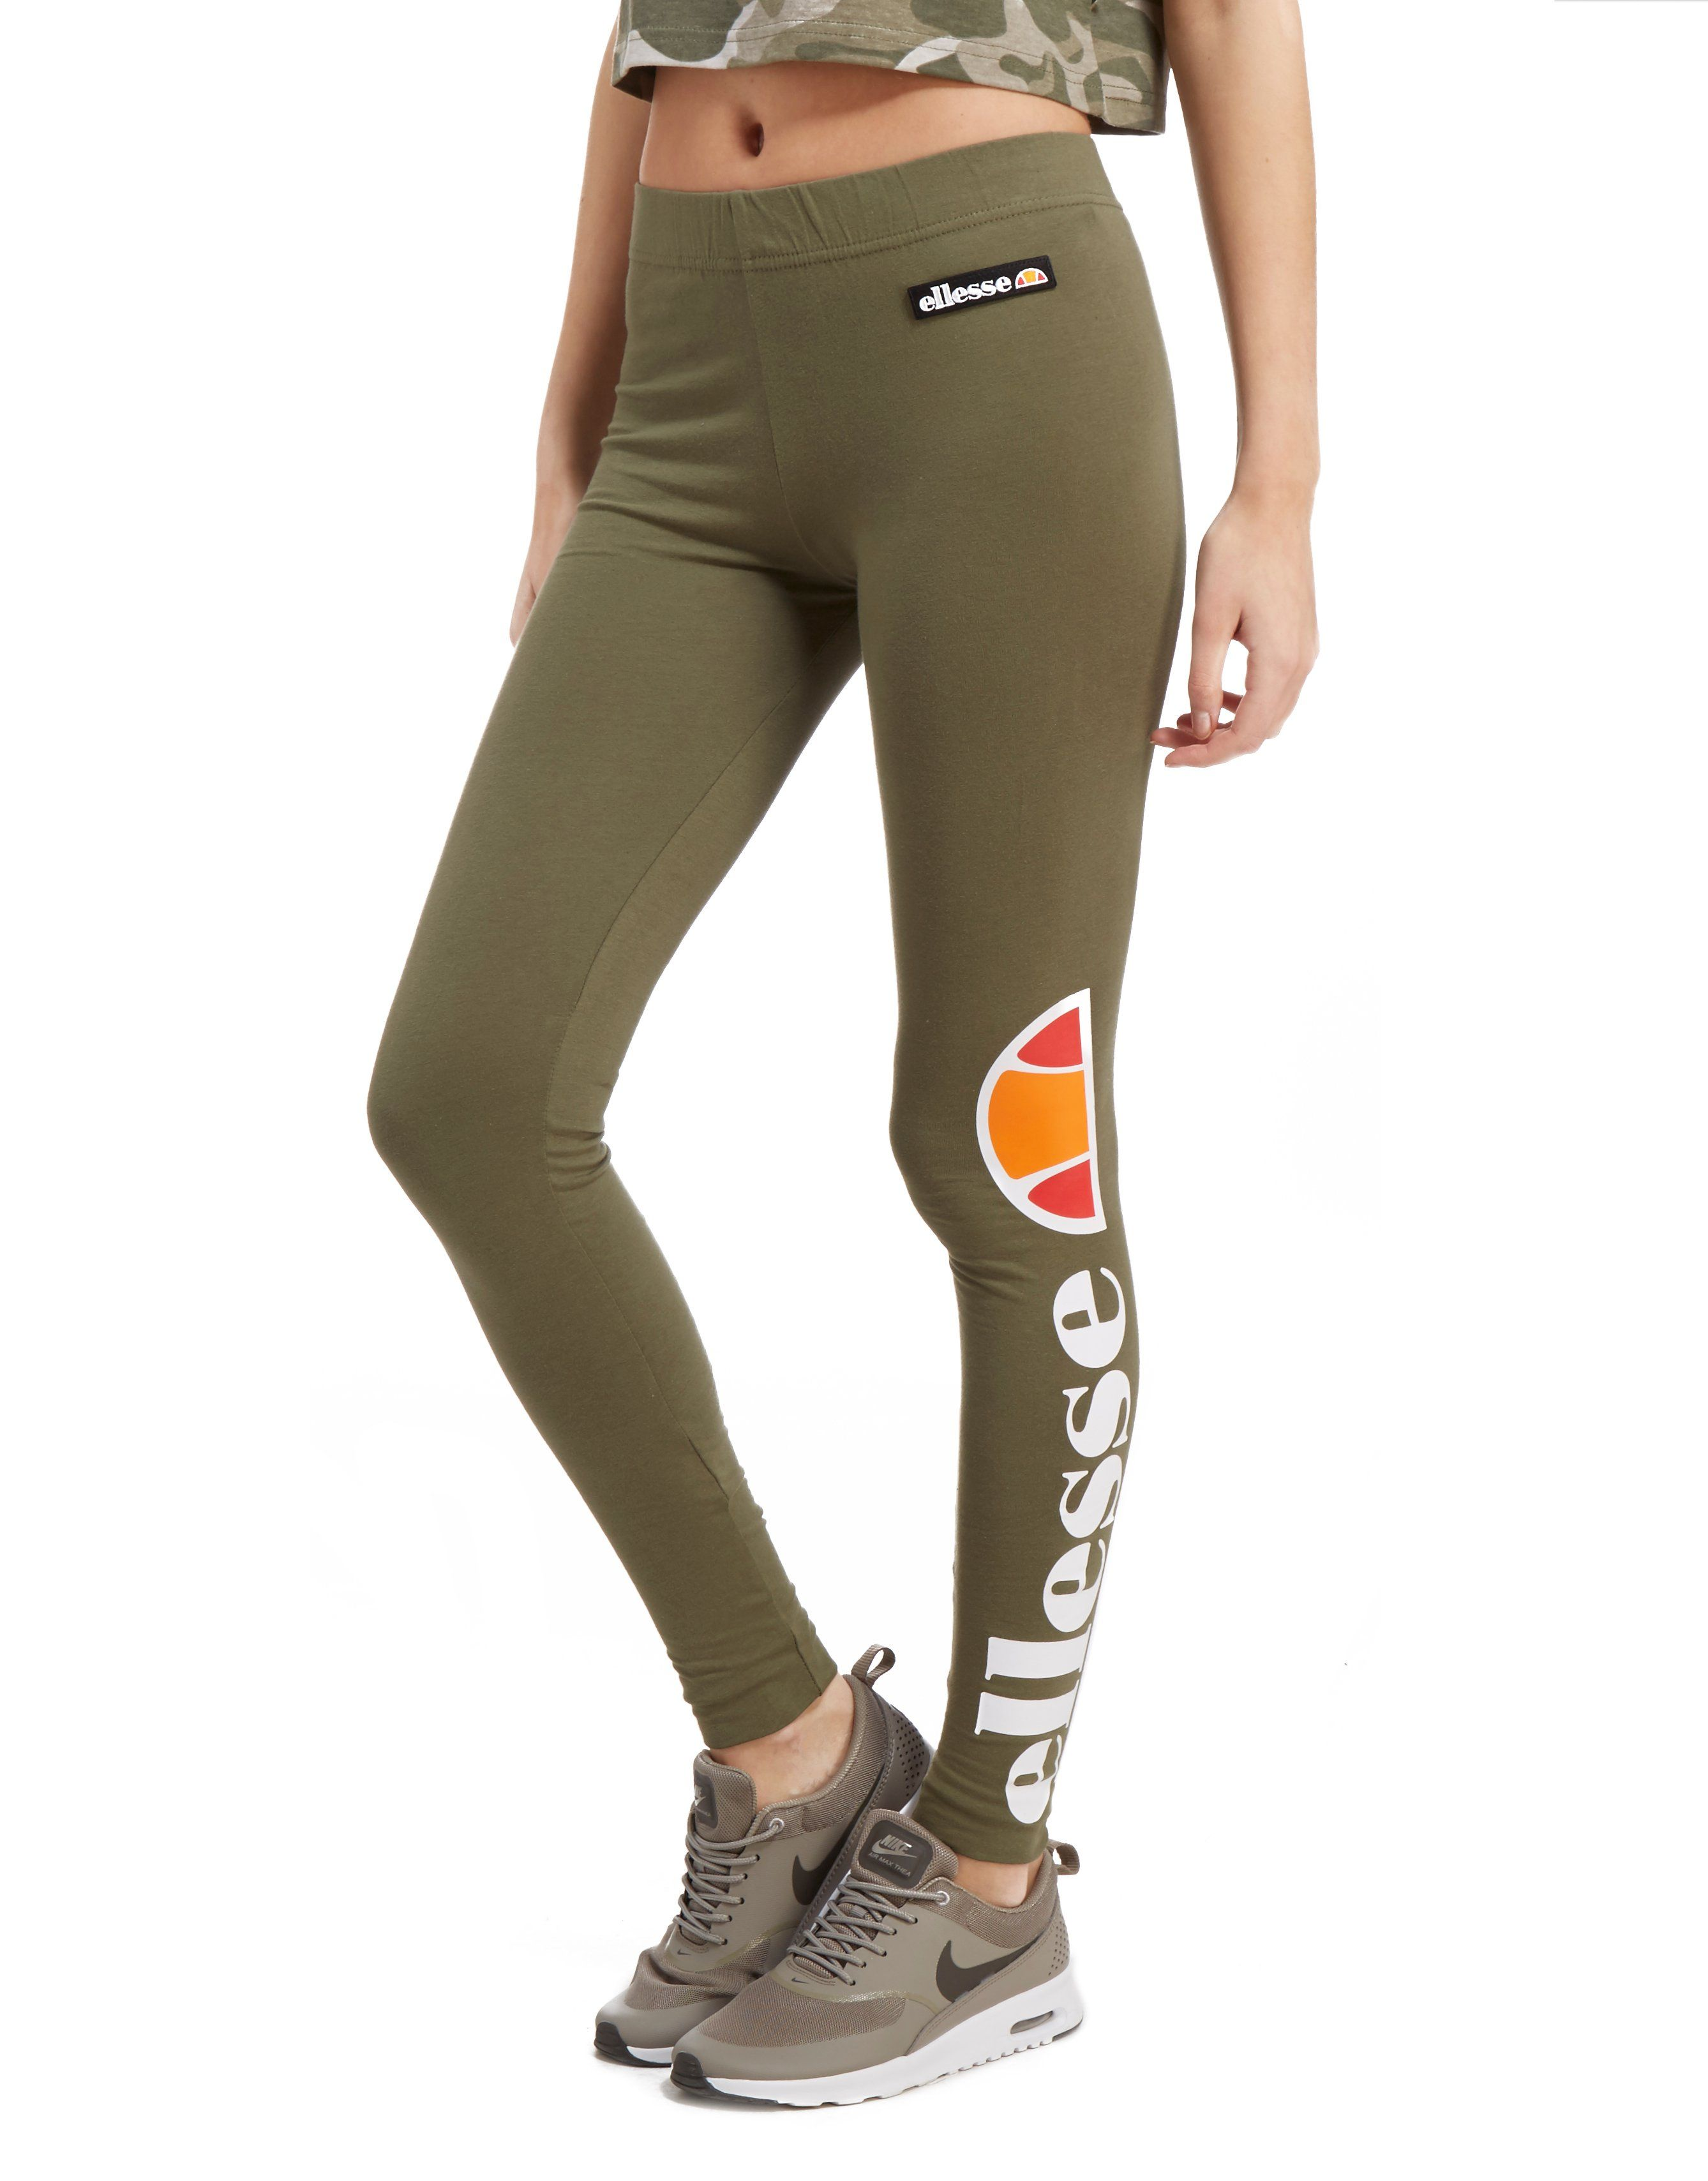 Ellesse Trevalli 2 Leggings